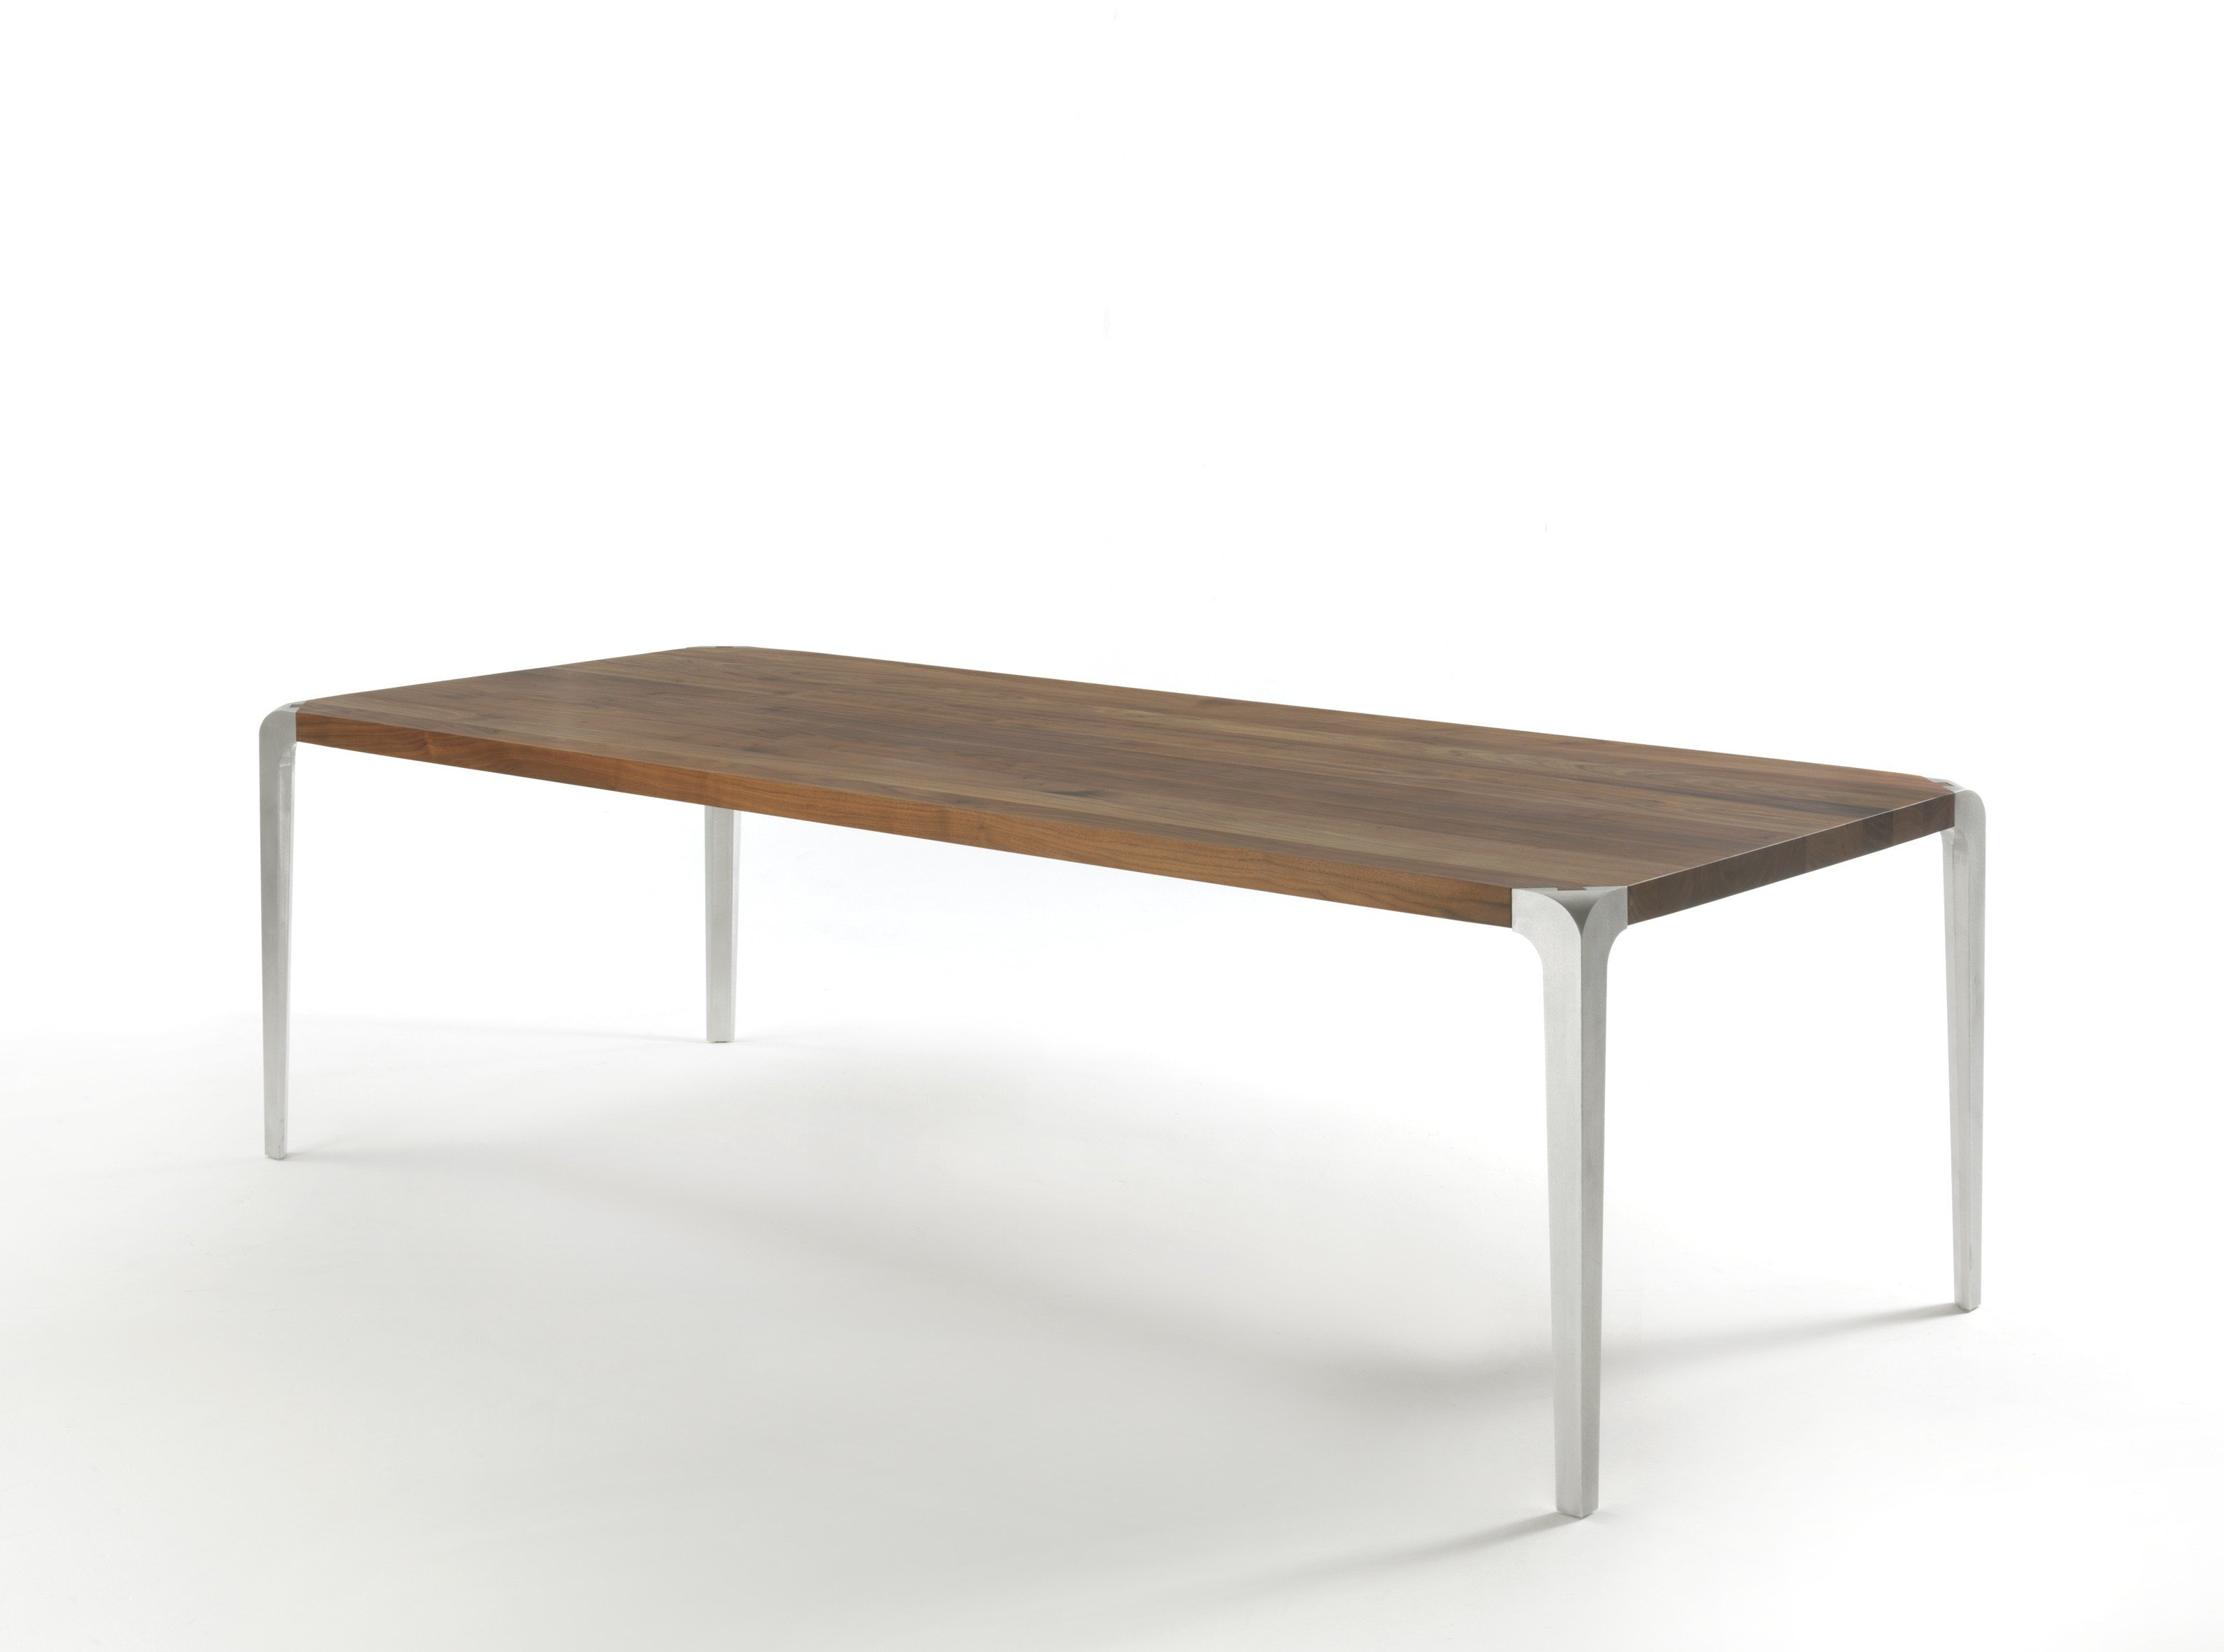 rectangular dining table sleek 2013 by riva 1920 design